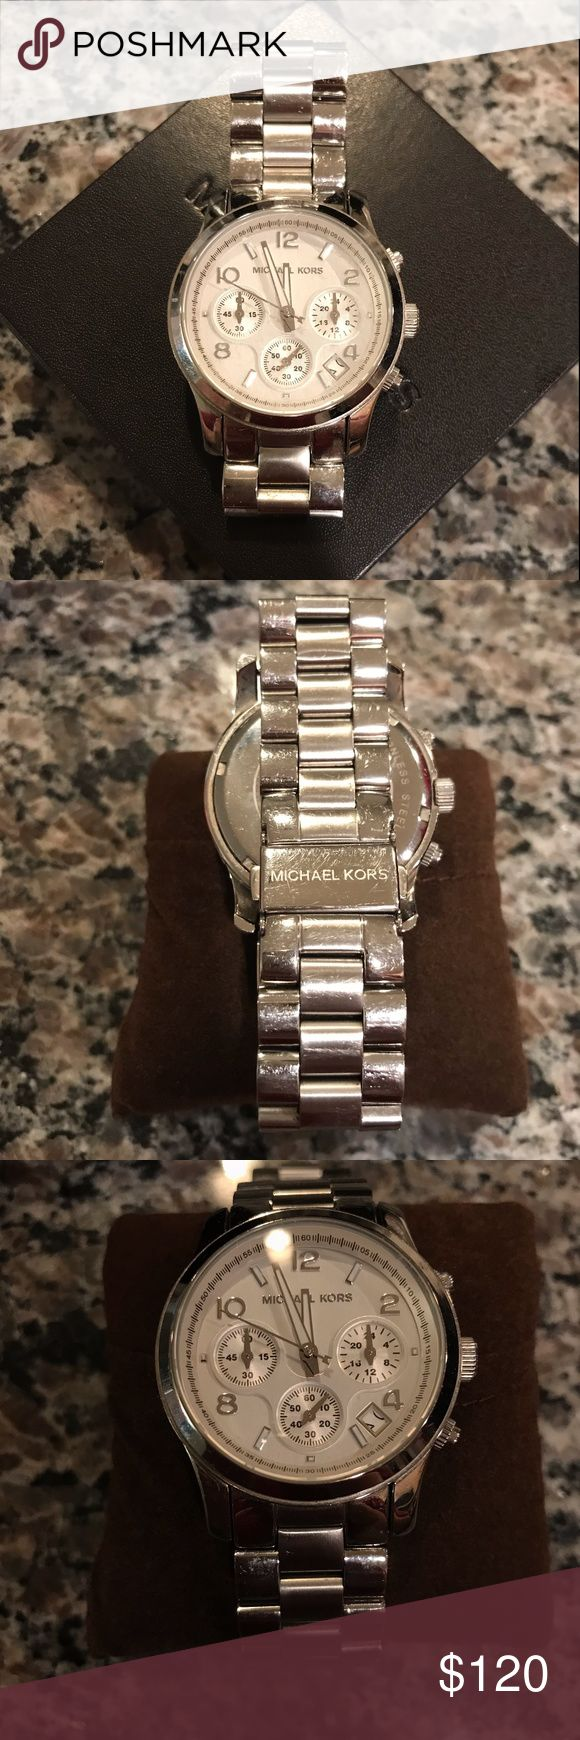 Michael Kors Silver Watch Michael Kors watch in silver. Worn but comes with the tags and all links! This watch would make a GREAT Christmas gift. Michael Kors Accessories Watches